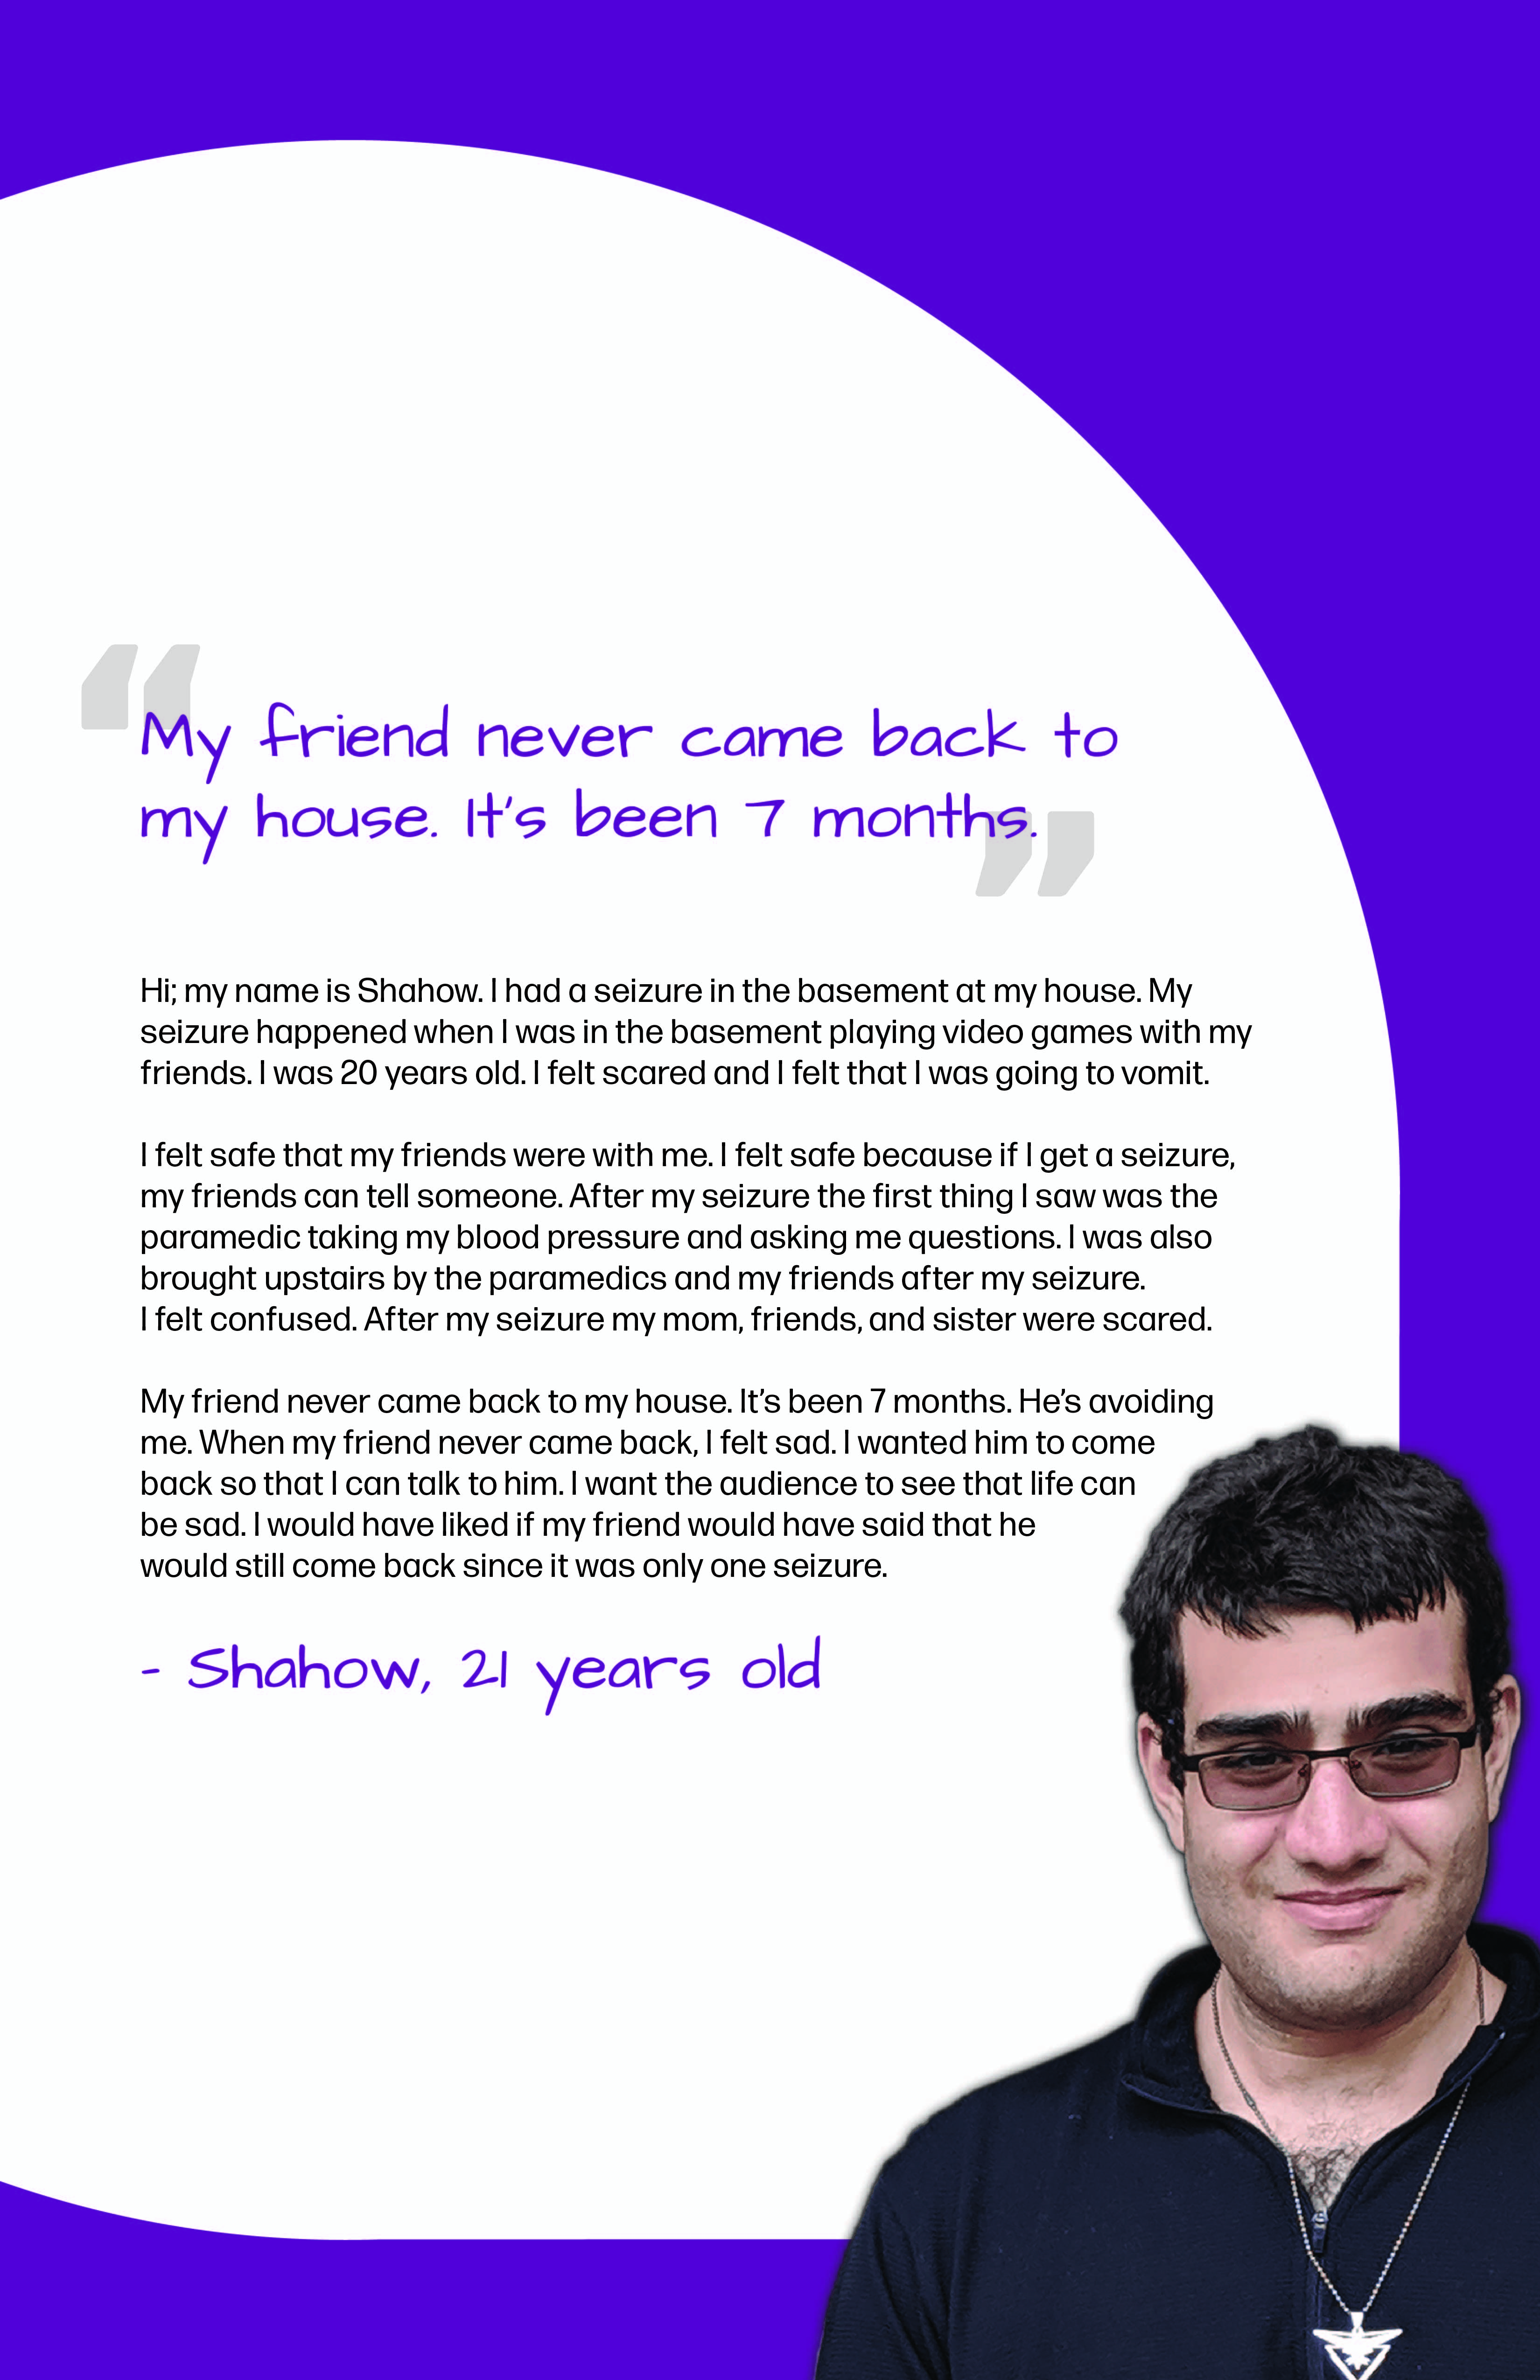 Shahow's Epilepsy Perspective Images Club story poster